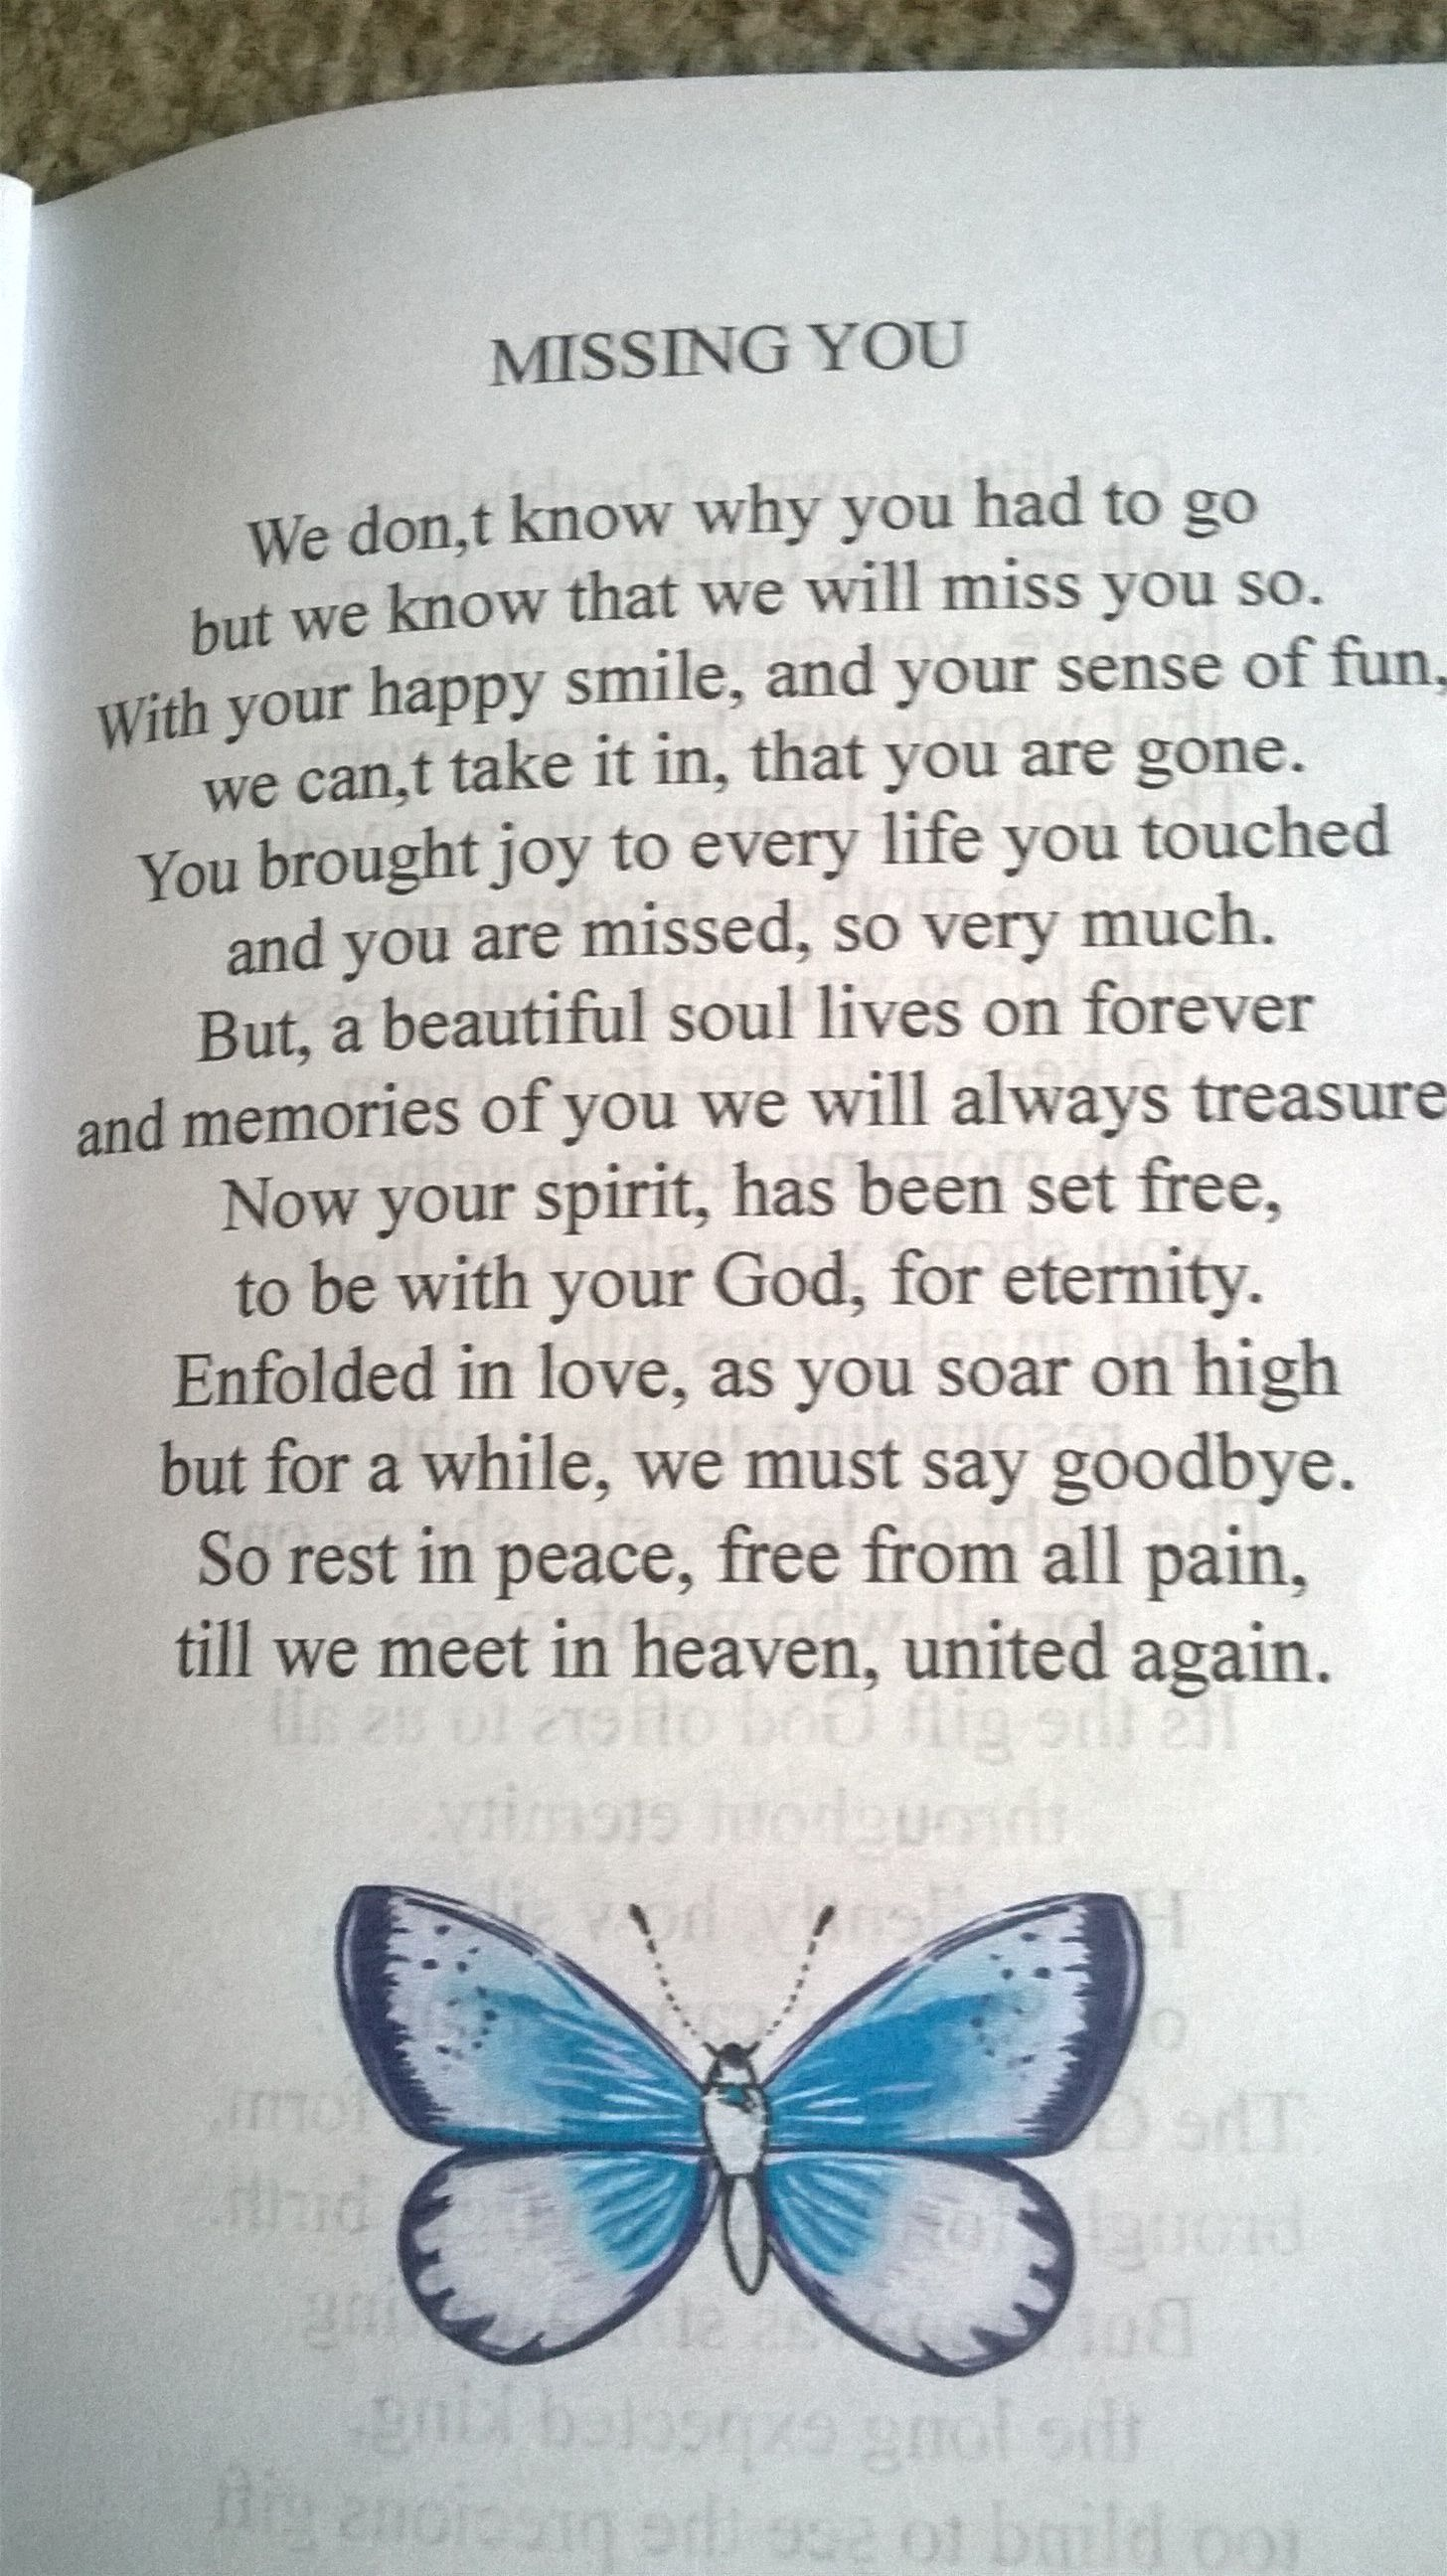 Quotes About Death Of A Friend New This Was Written After The Sudden Death Of A Dear Friend M Shoemark .